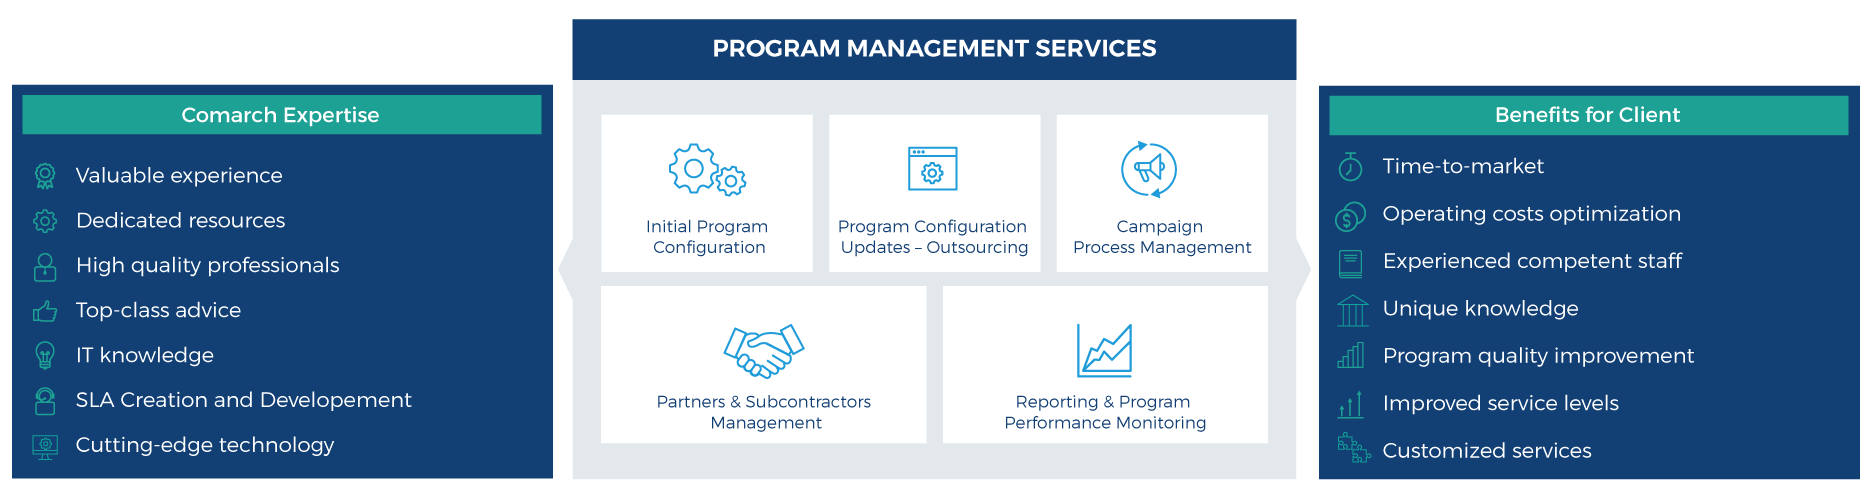 Program Management Services - infographic